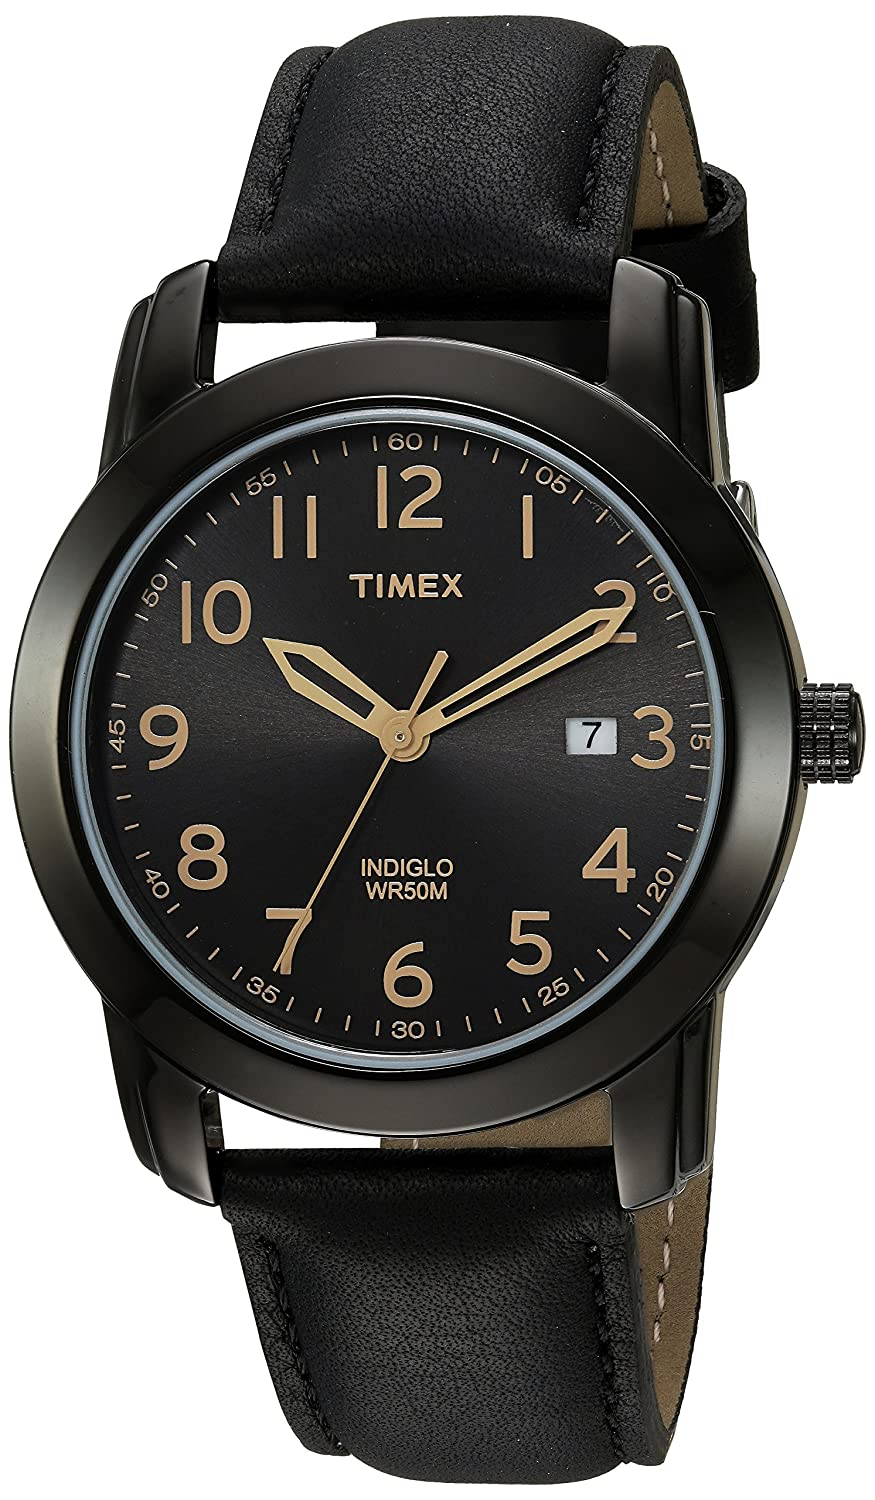 caacd60a55c6 Amazon.com  Timex Men s T2P135 Highland Street Gray Stainless Steel  Expansion Band Watch  Timex  Watches